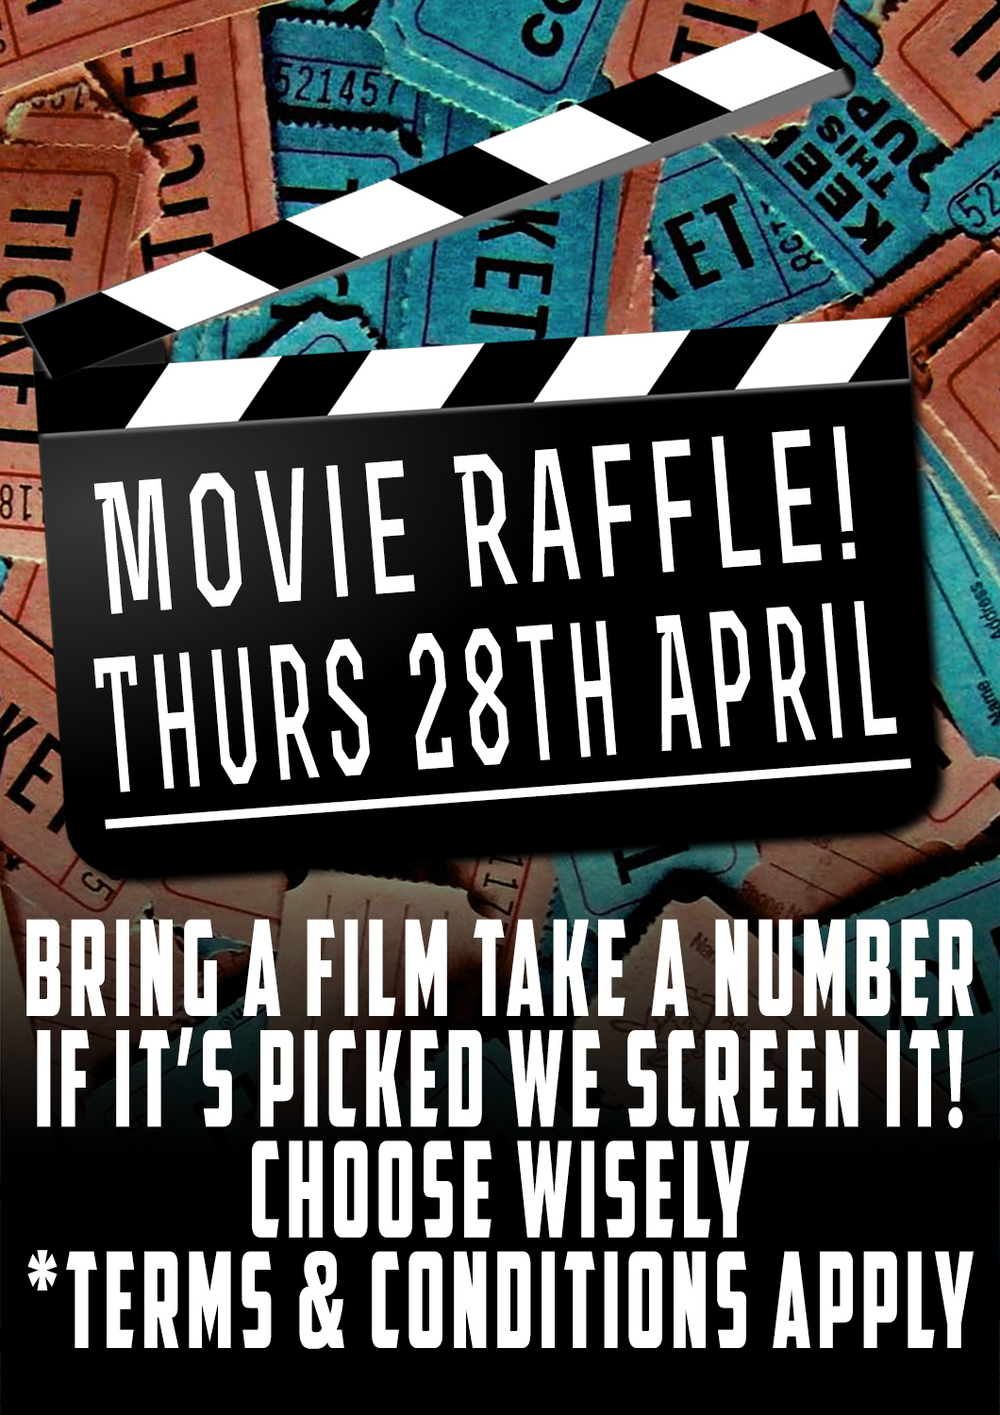 movie raffle night